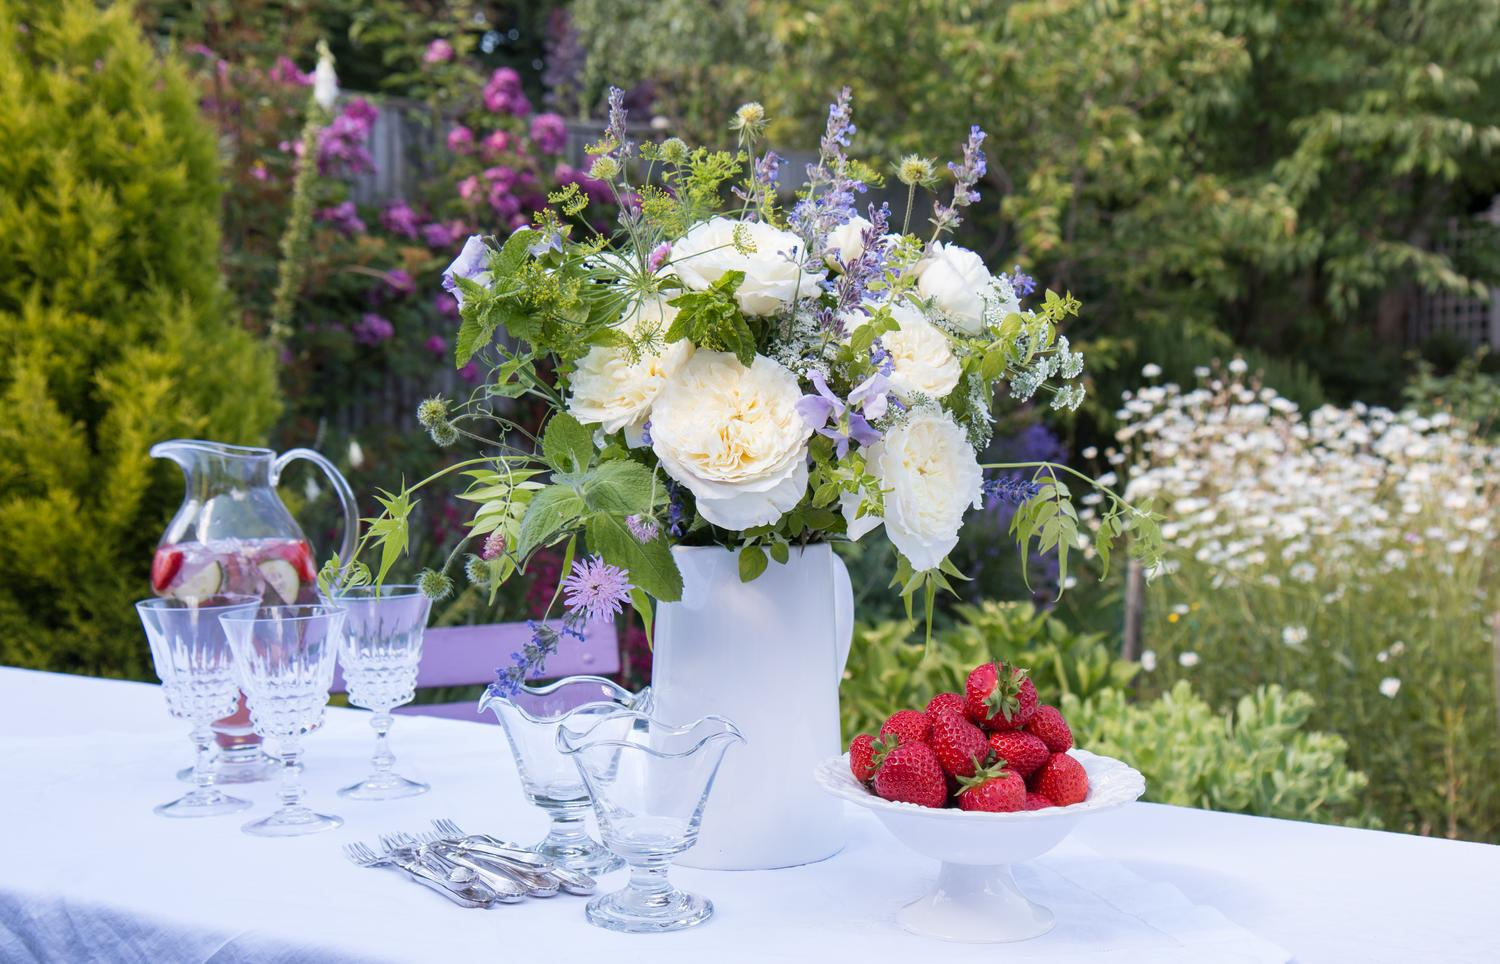 Summer Outdoors Party With Cream Roses Strawberries and Champagne